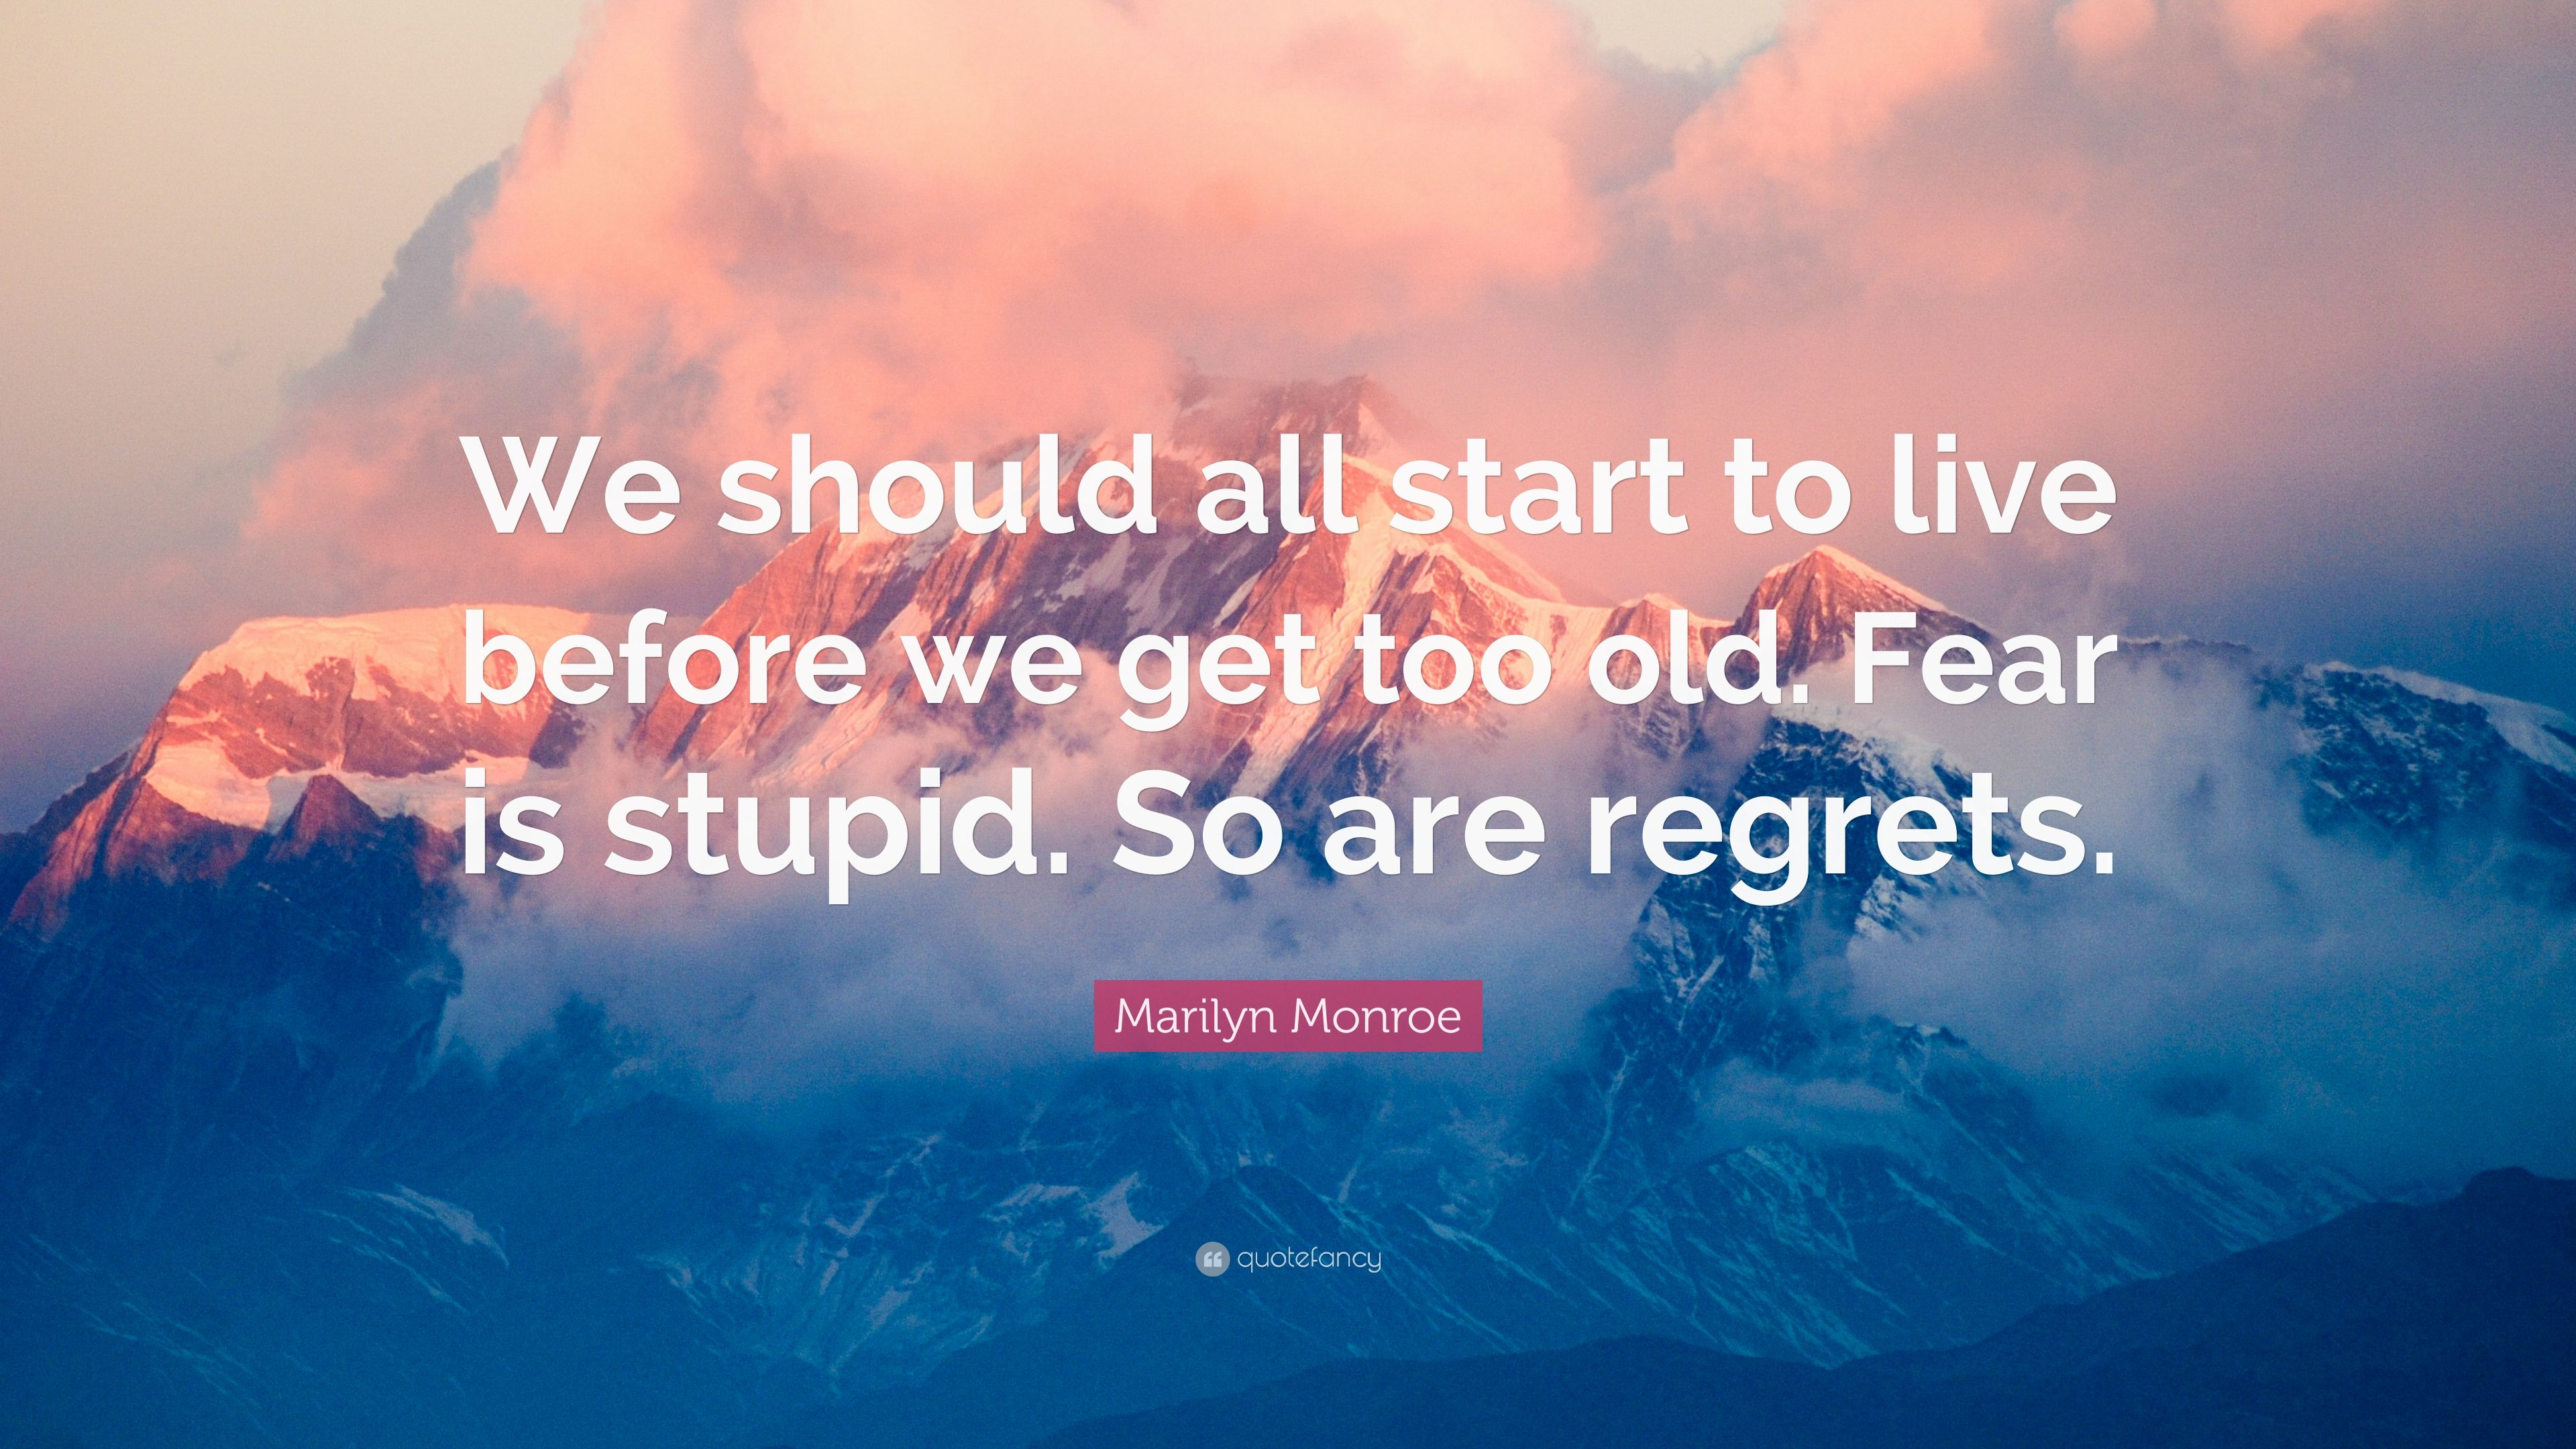 Life No Live Mark Twain Quotes Regrets